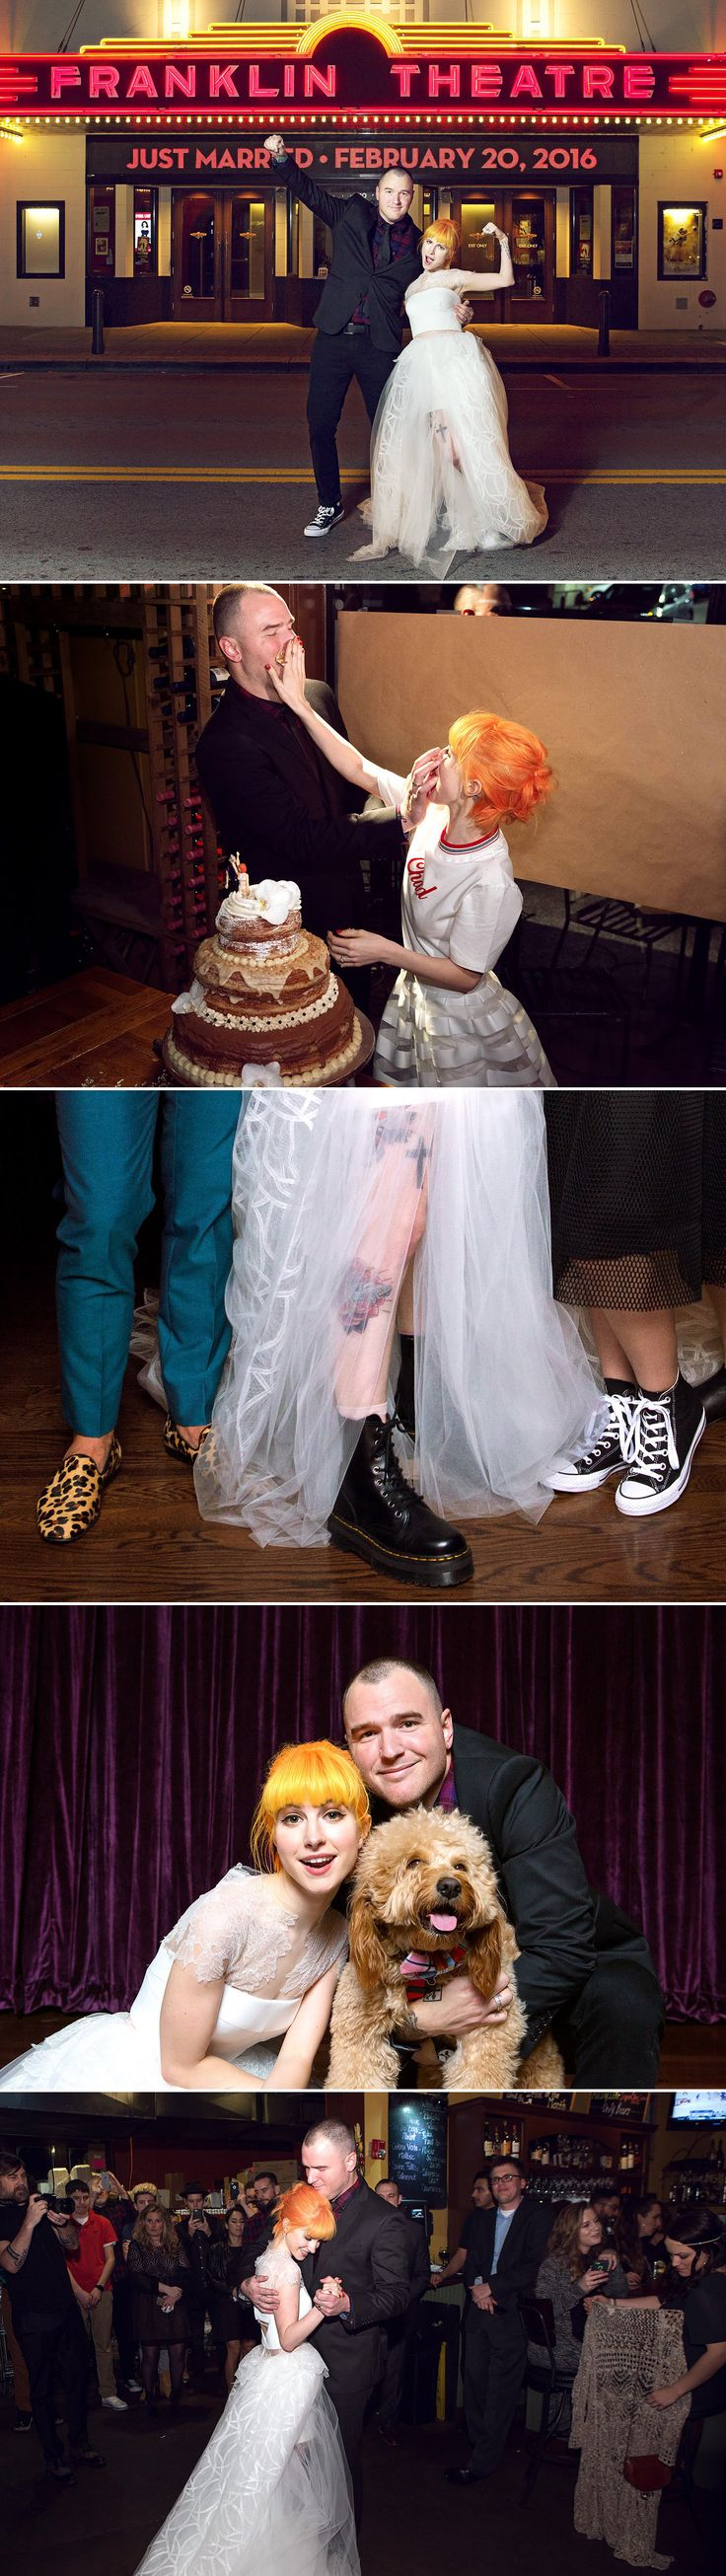 Paramore's Hayley Williams' punk star wedding at The Franklin Theatre // Celebrity wedding inspiration